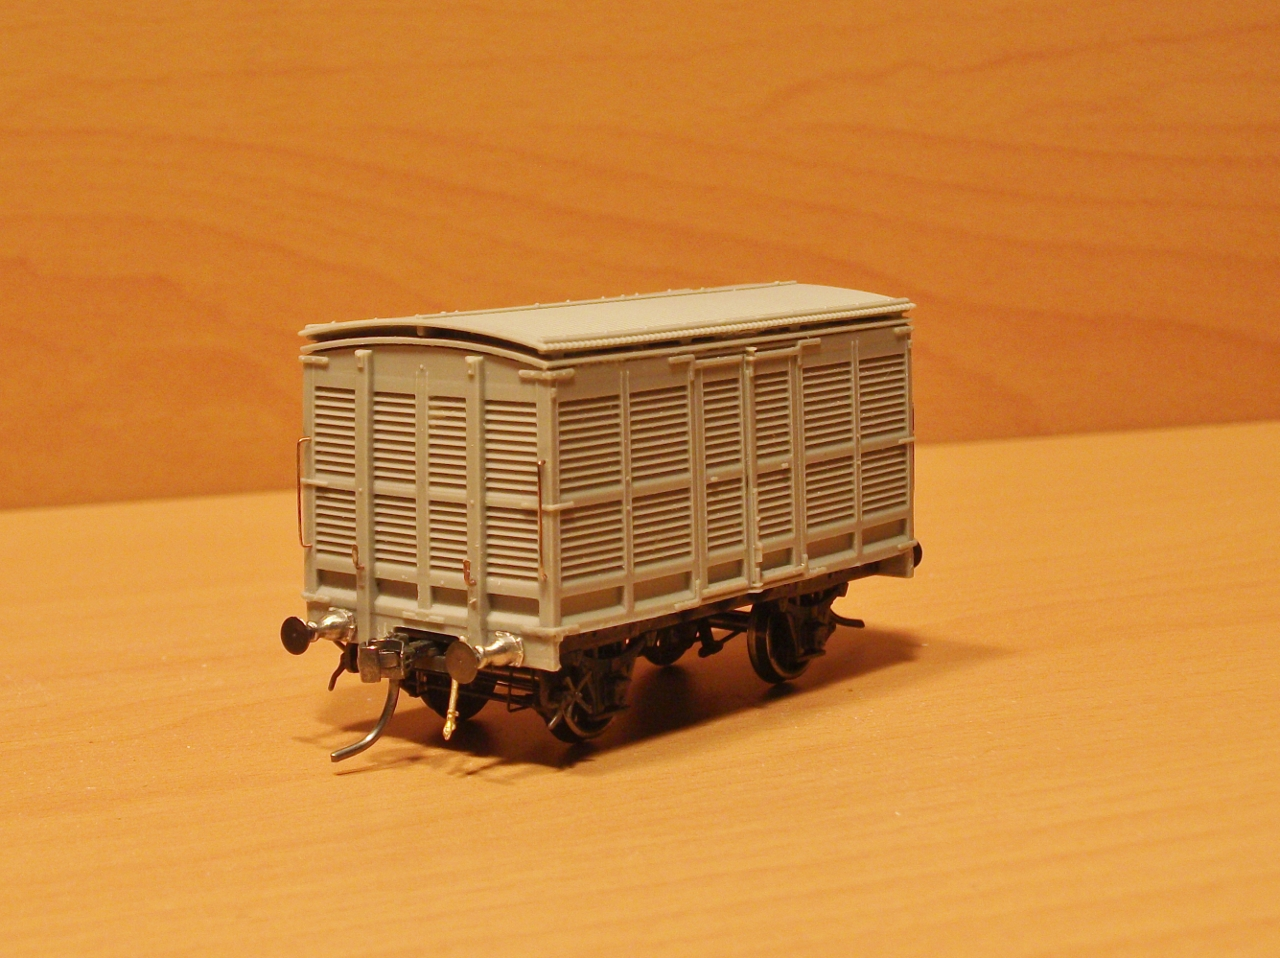 A model showing how the van would look when restored